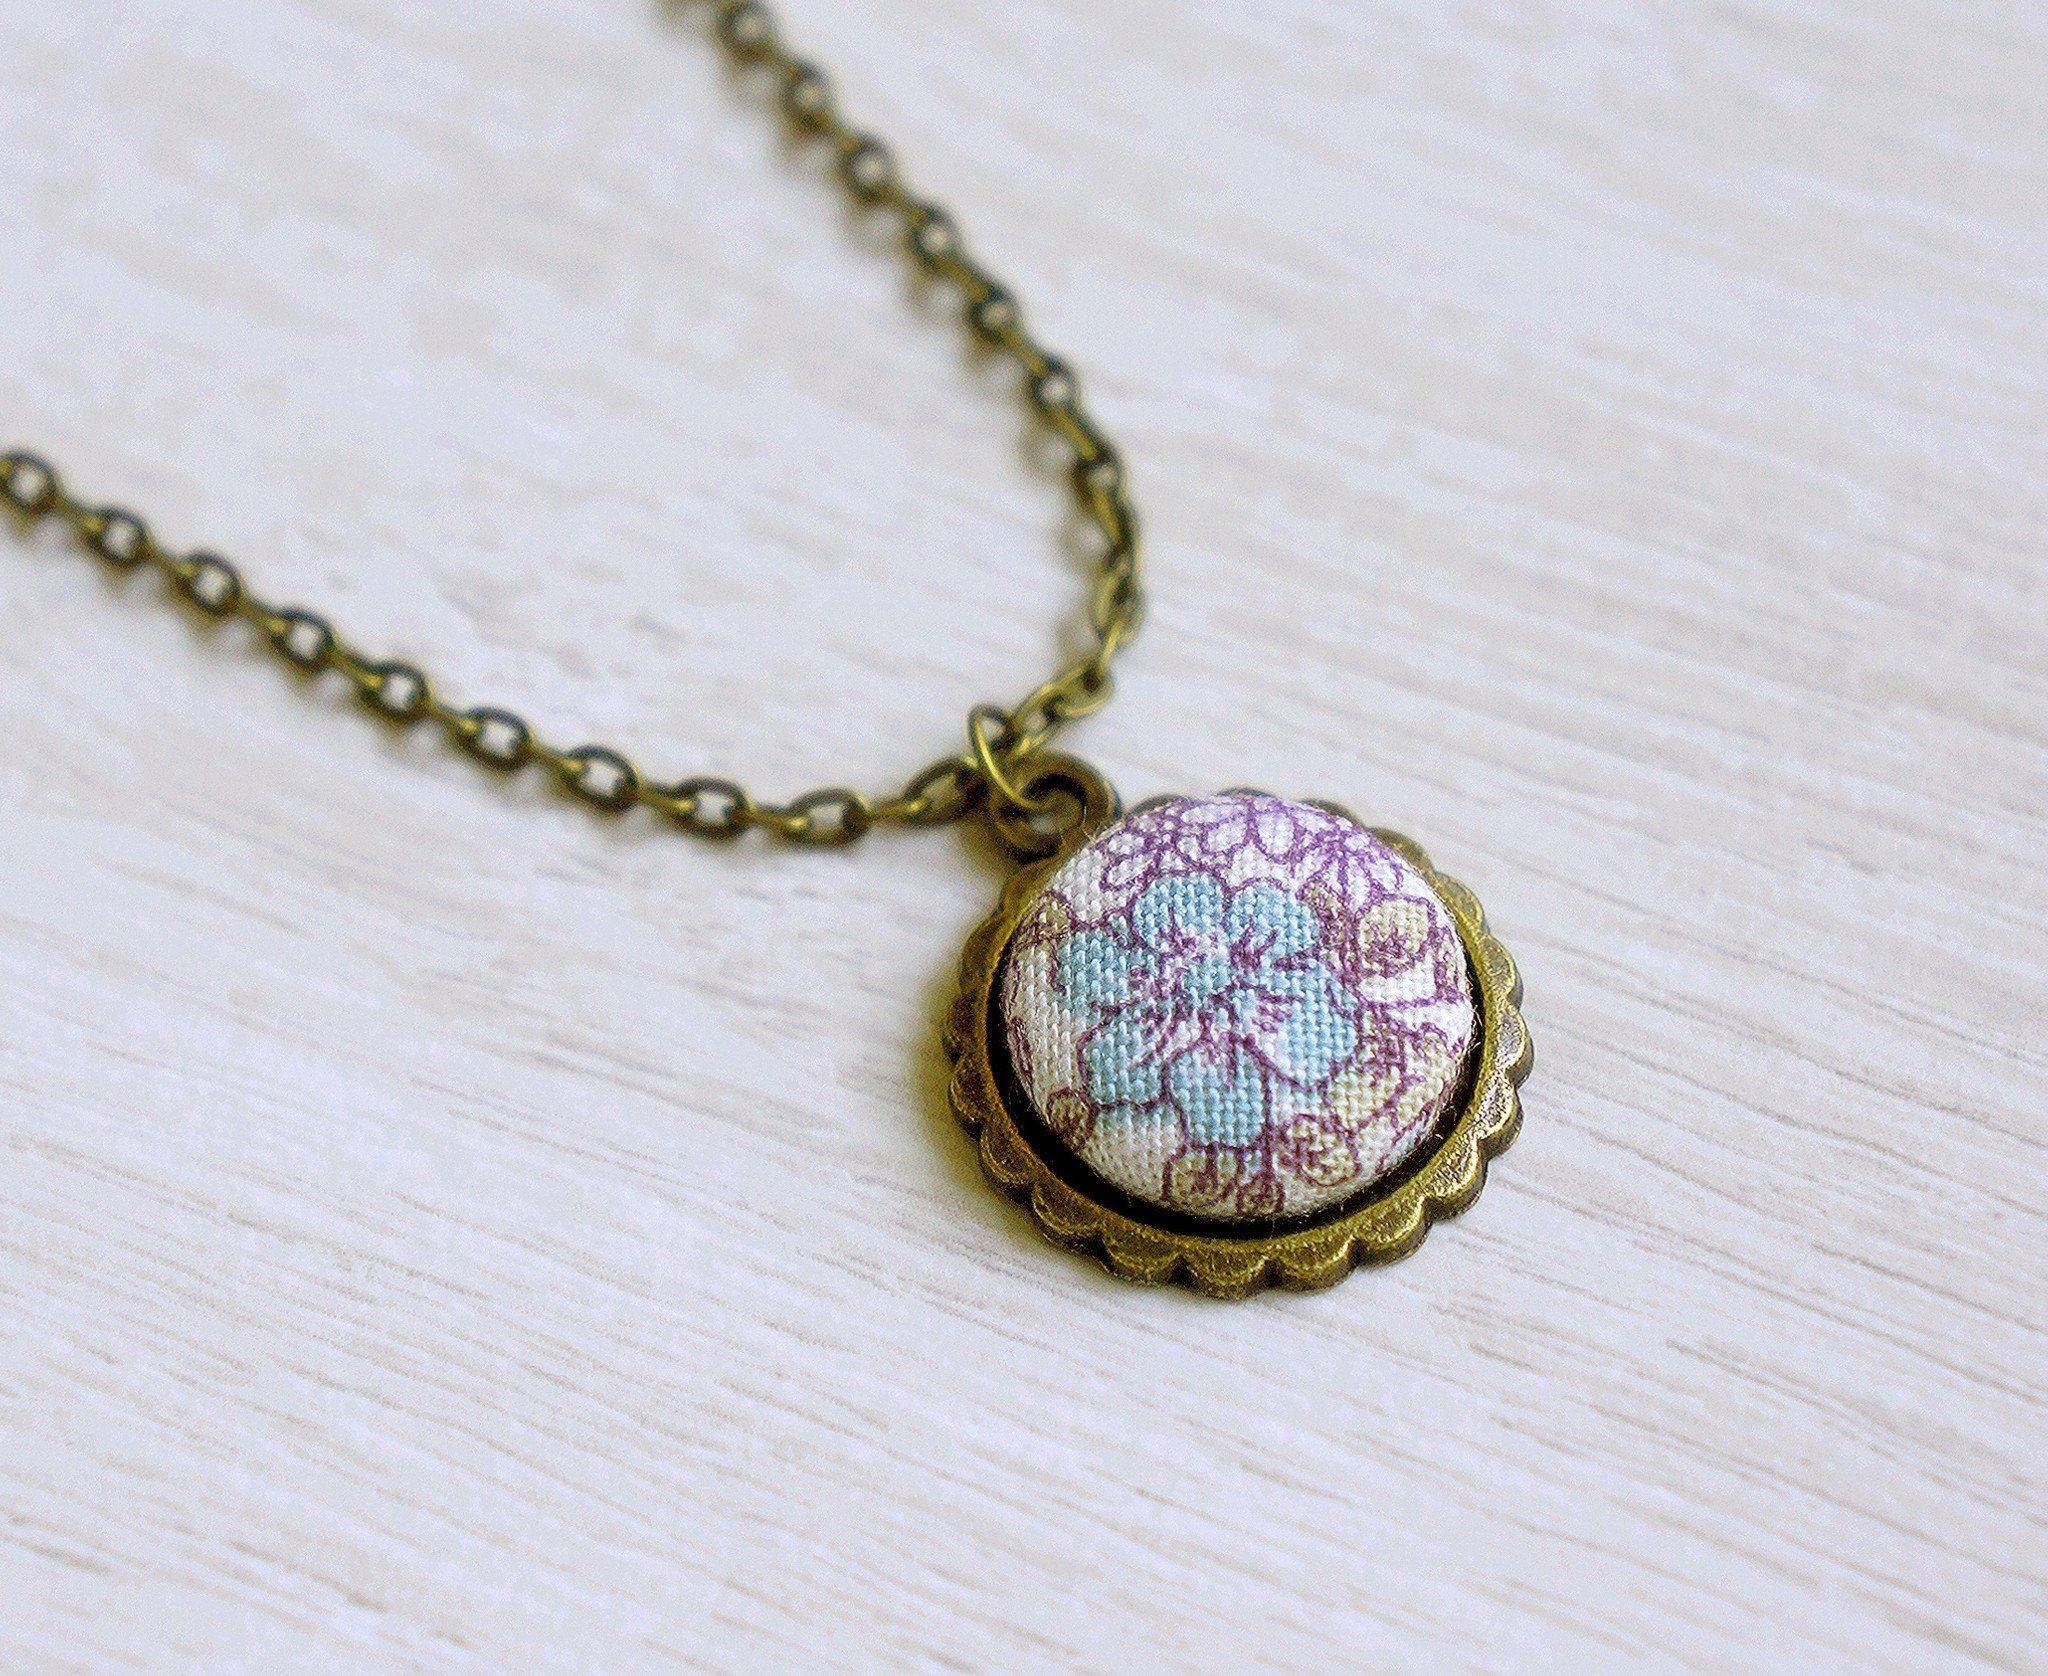 Julia Rose Handmade Fabric Button Necklace - Necklaces - Paperdaise Accessories - Naiise